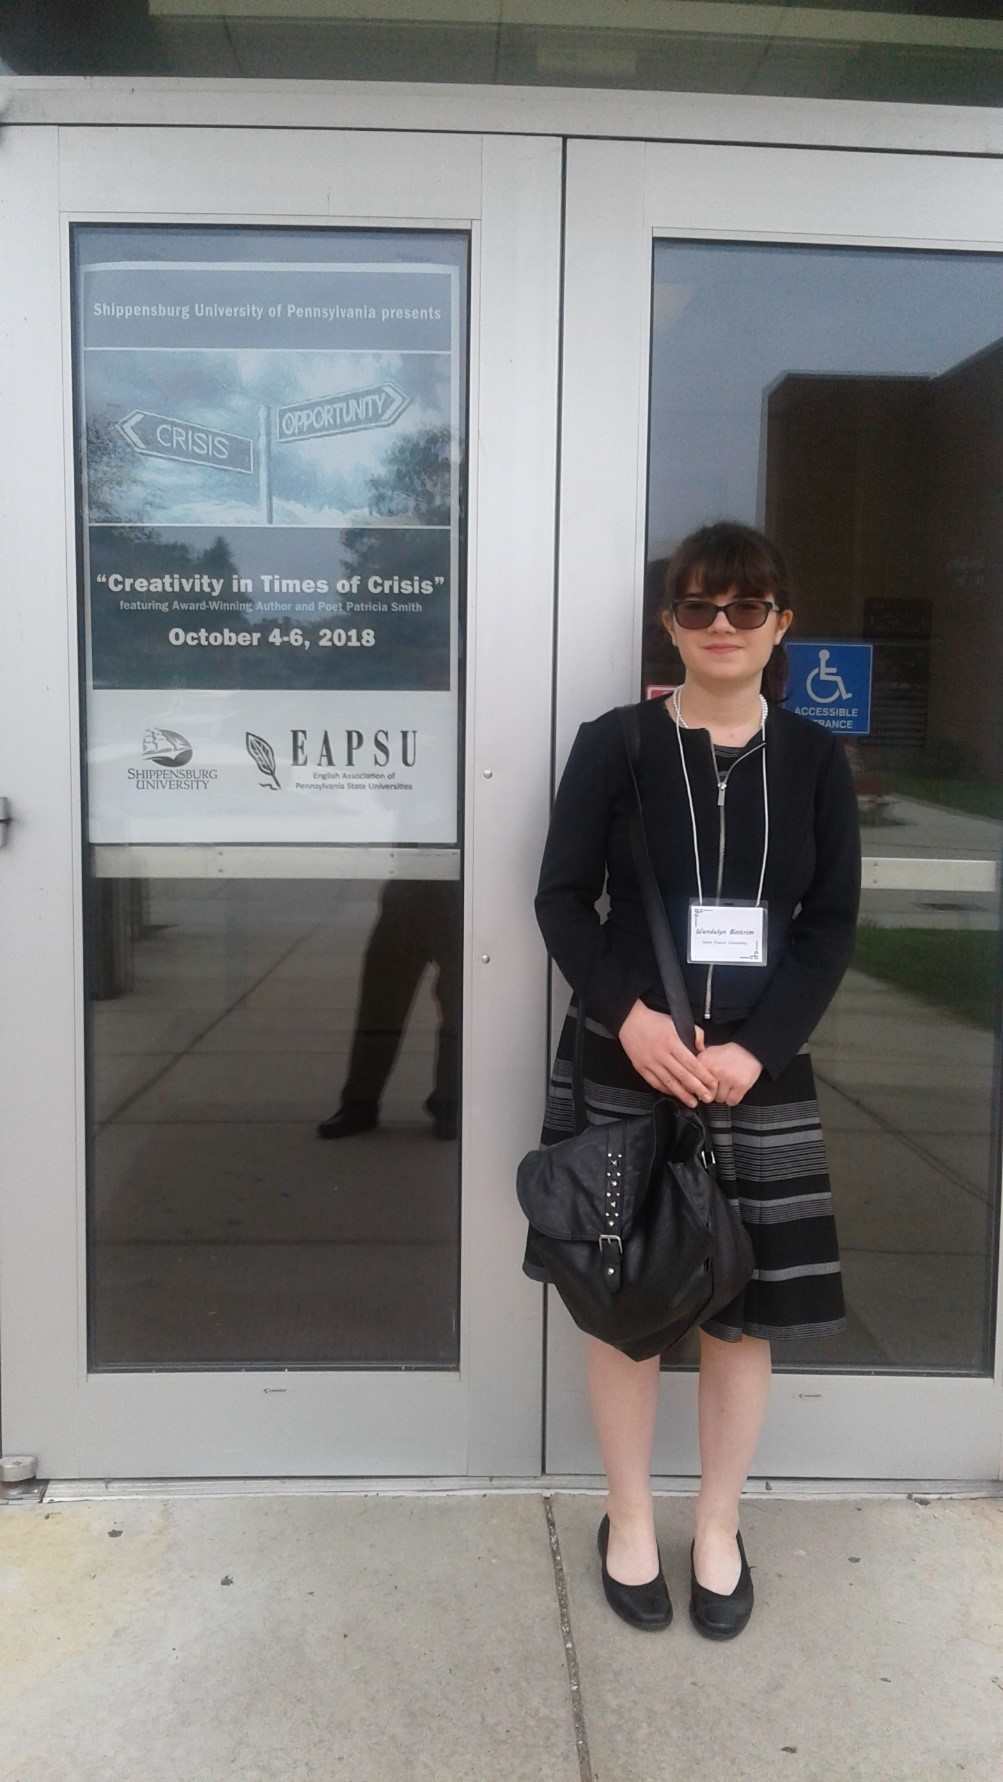 Wendy Bintrim at the 2018 EAPSU Conference at Shippensburg U of PA